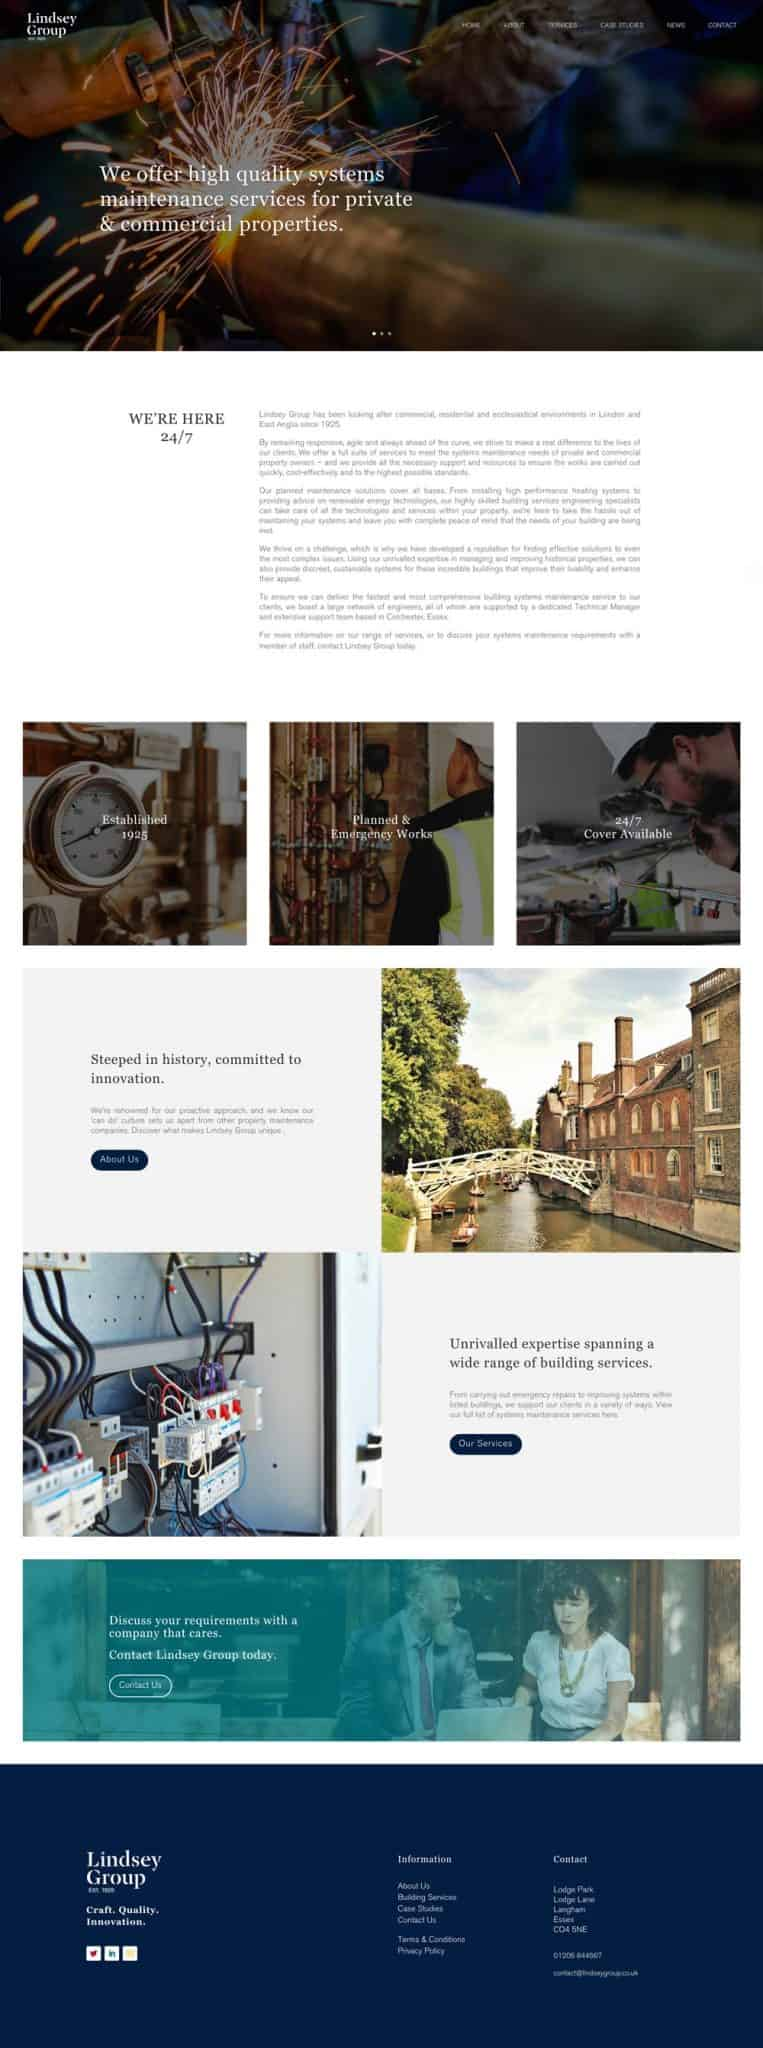 lindsey group website home page